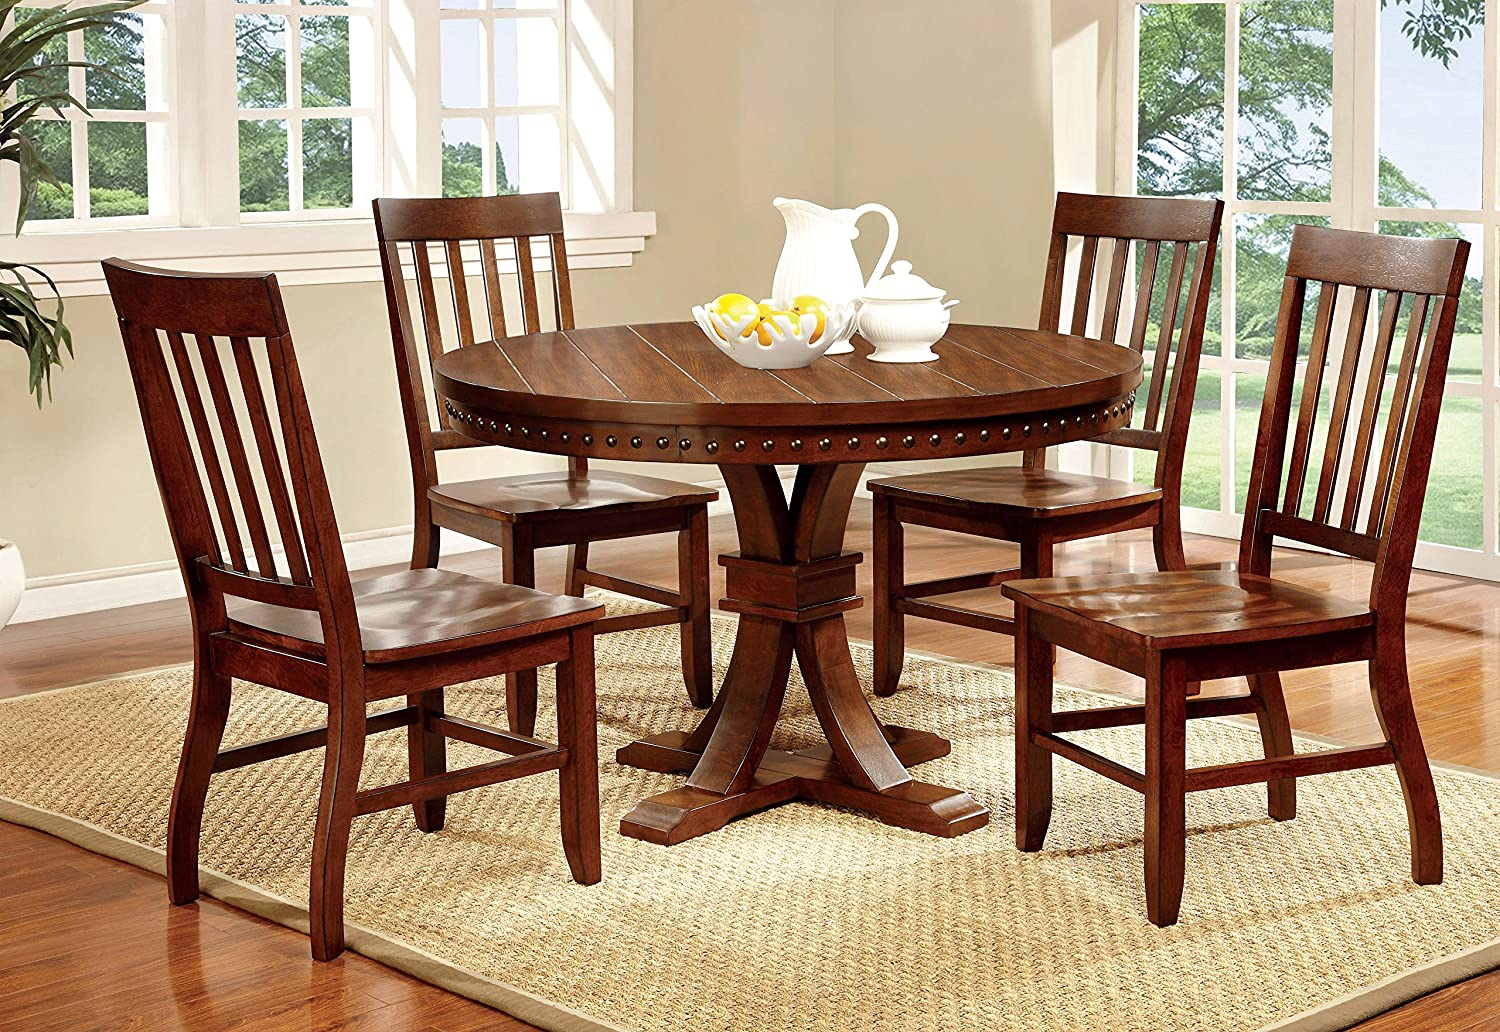 Amazon com furniture of america castile 5 piece transitional round dining table set dark oak table chair sets